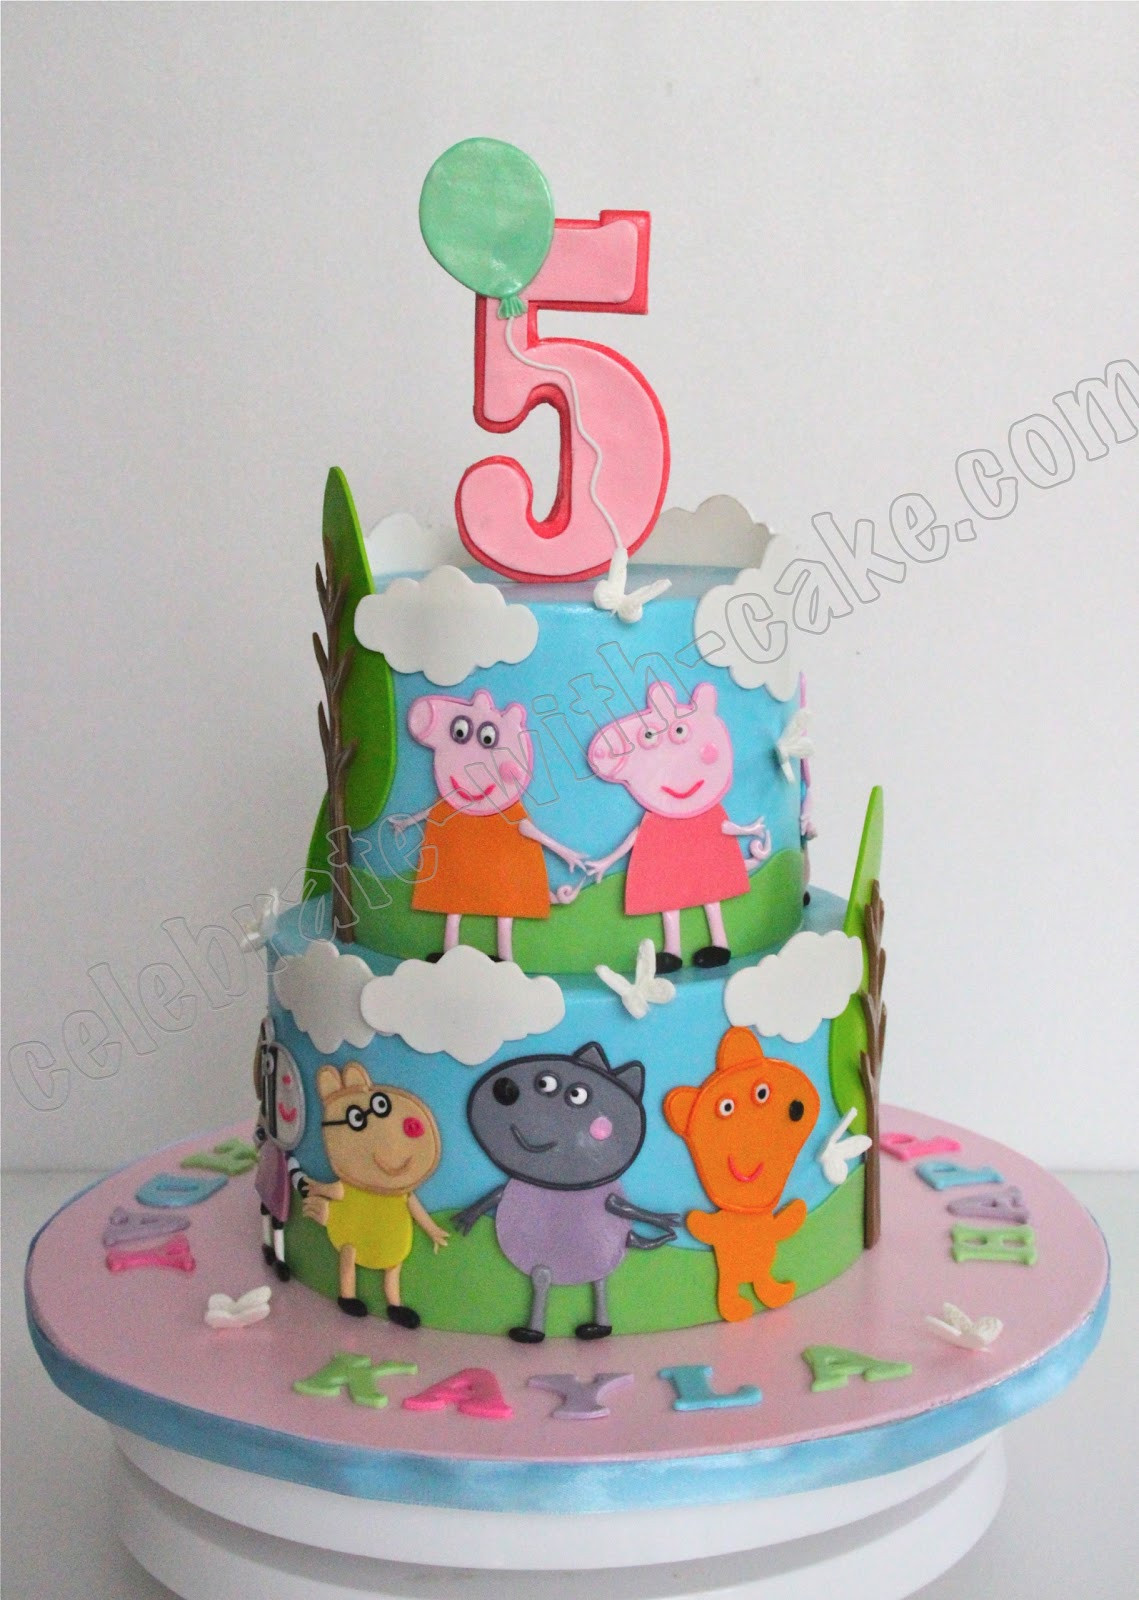 Peppa Pig Birthday Cake  Celebrate with Cake Peppa Pig Cake